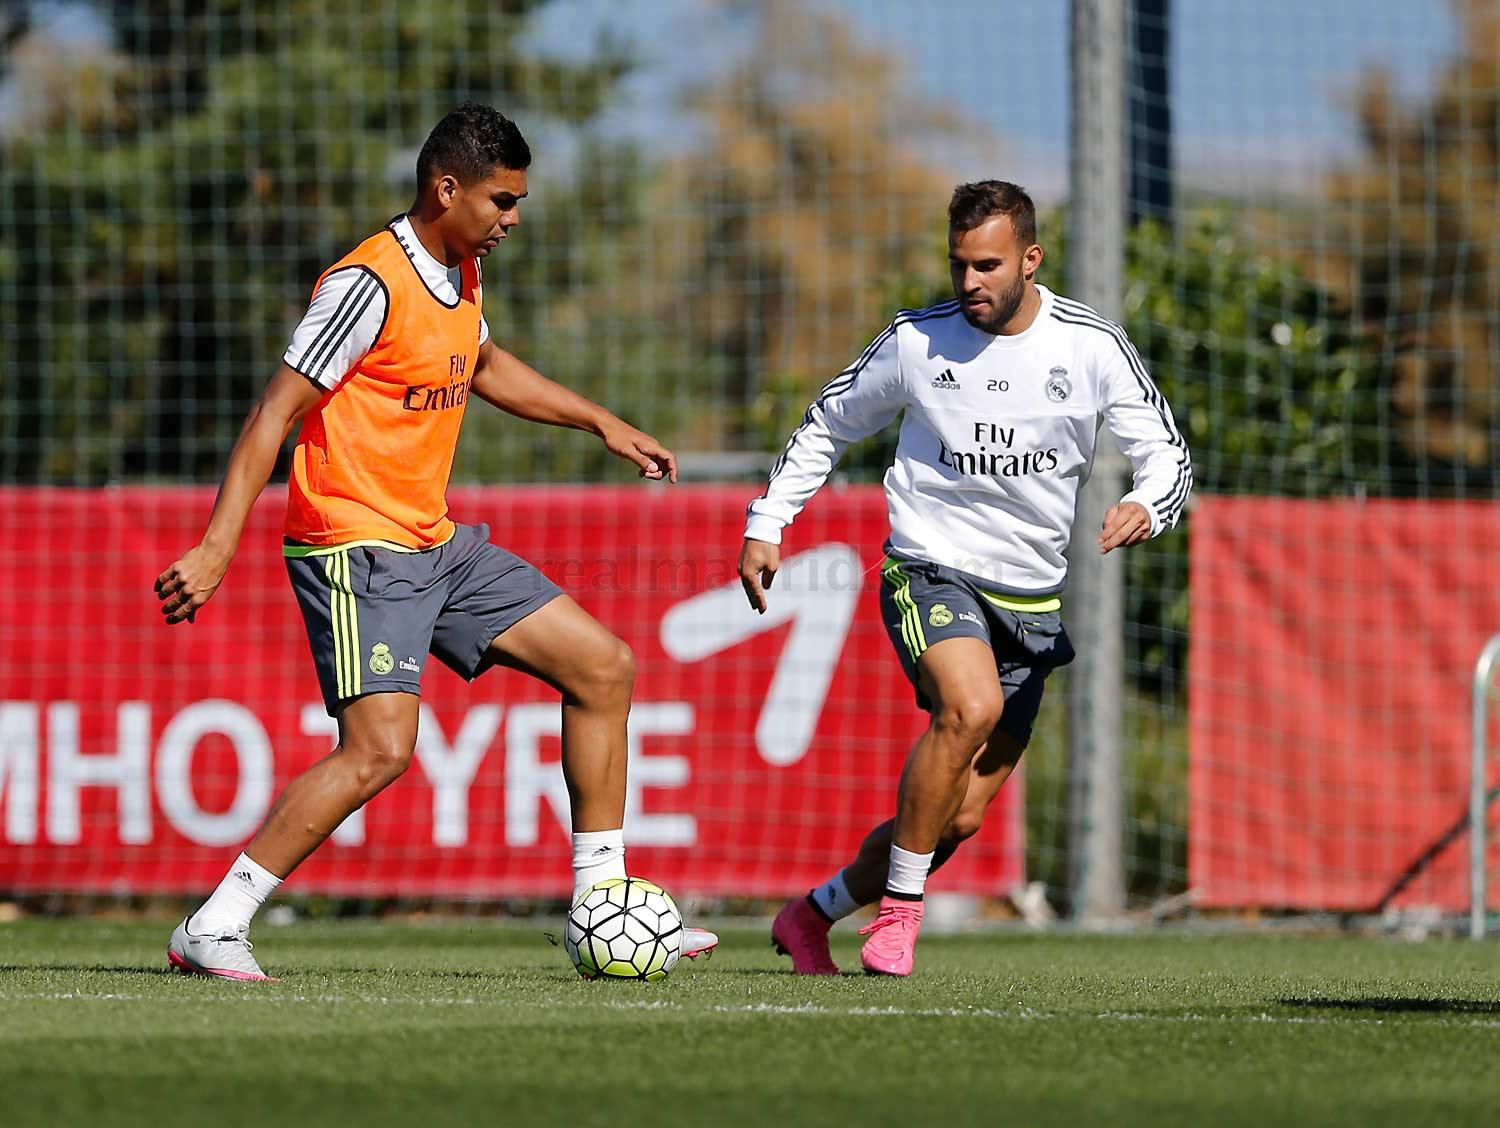 Real Madrid - Entrenamiento del Real Madrid - 18-09-2015